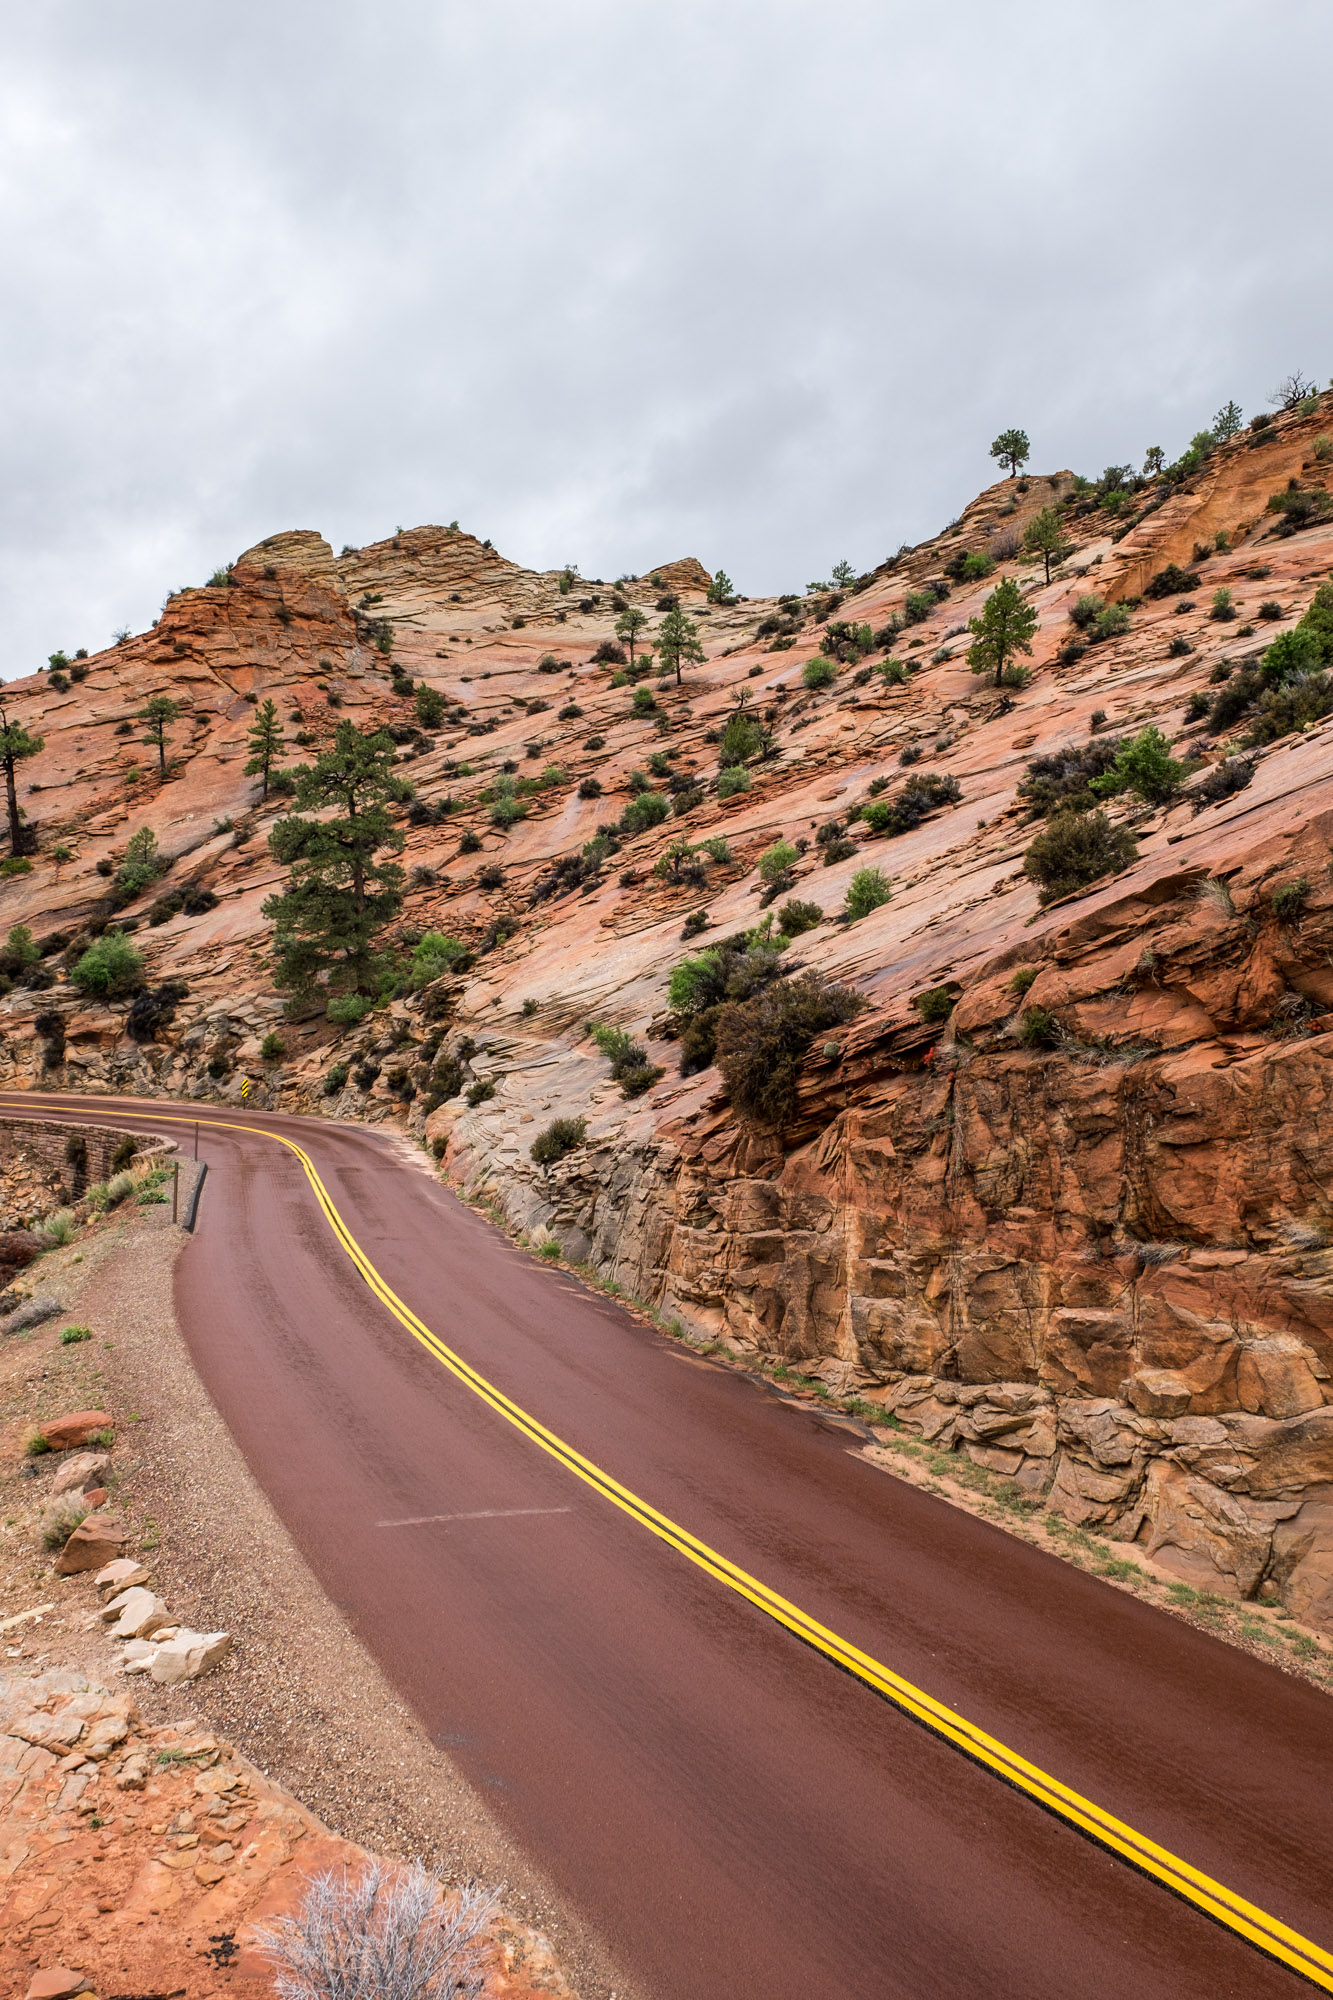 We loved photographing the red roads among the interesting rock formations.